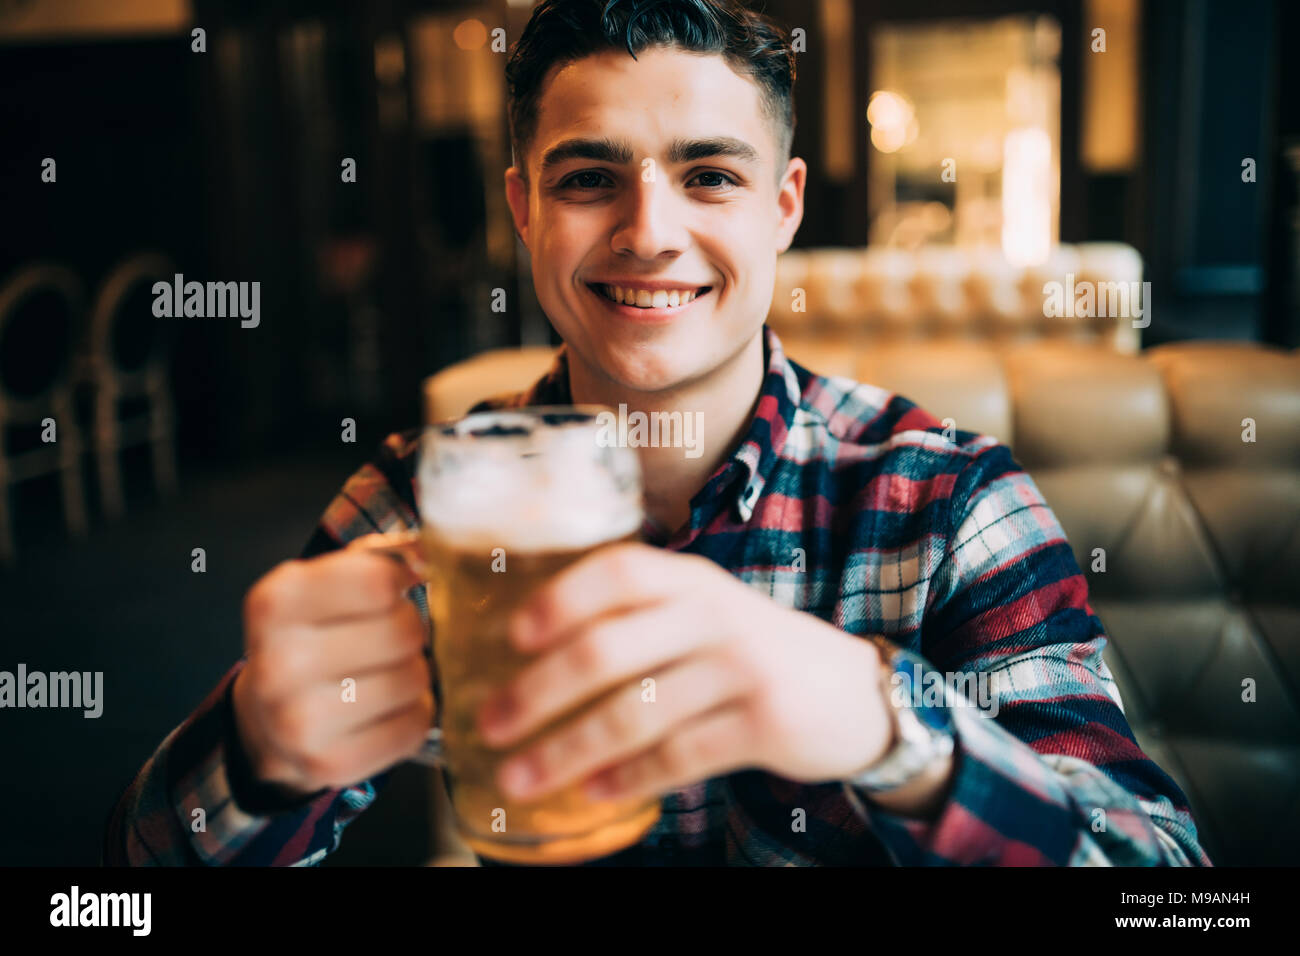 Man drinking beer. Young man drinking beer while sitting at the bar counter - Stock Image